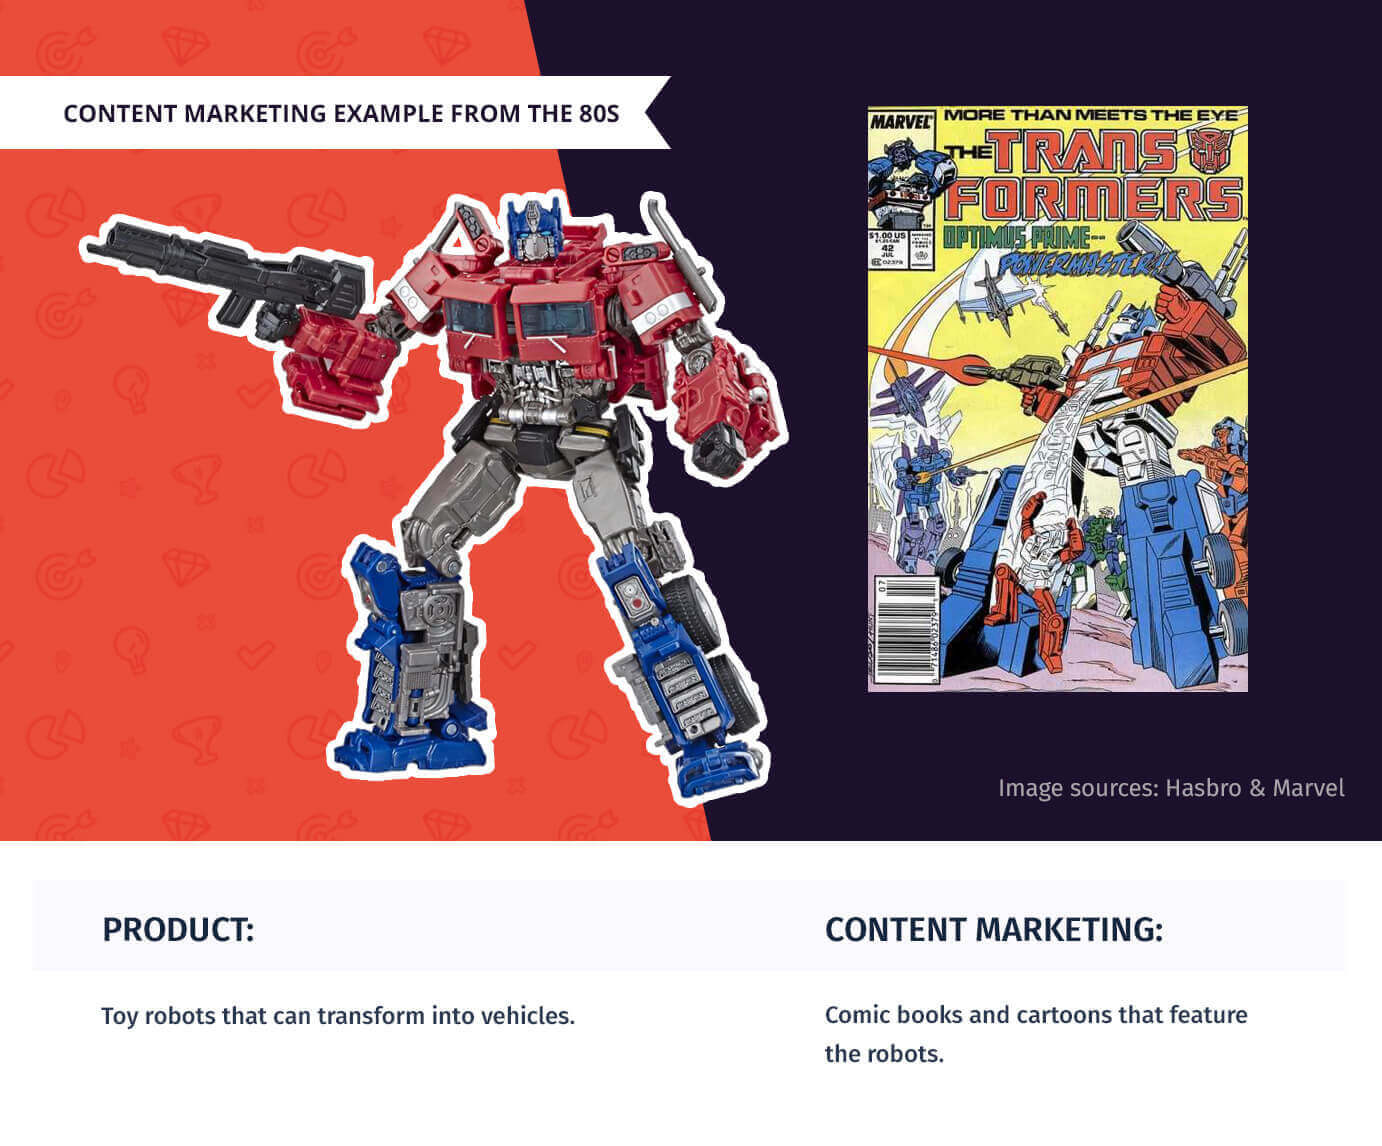 Transformer toys, comic books, and cartoons as an illustration of what content marketing is